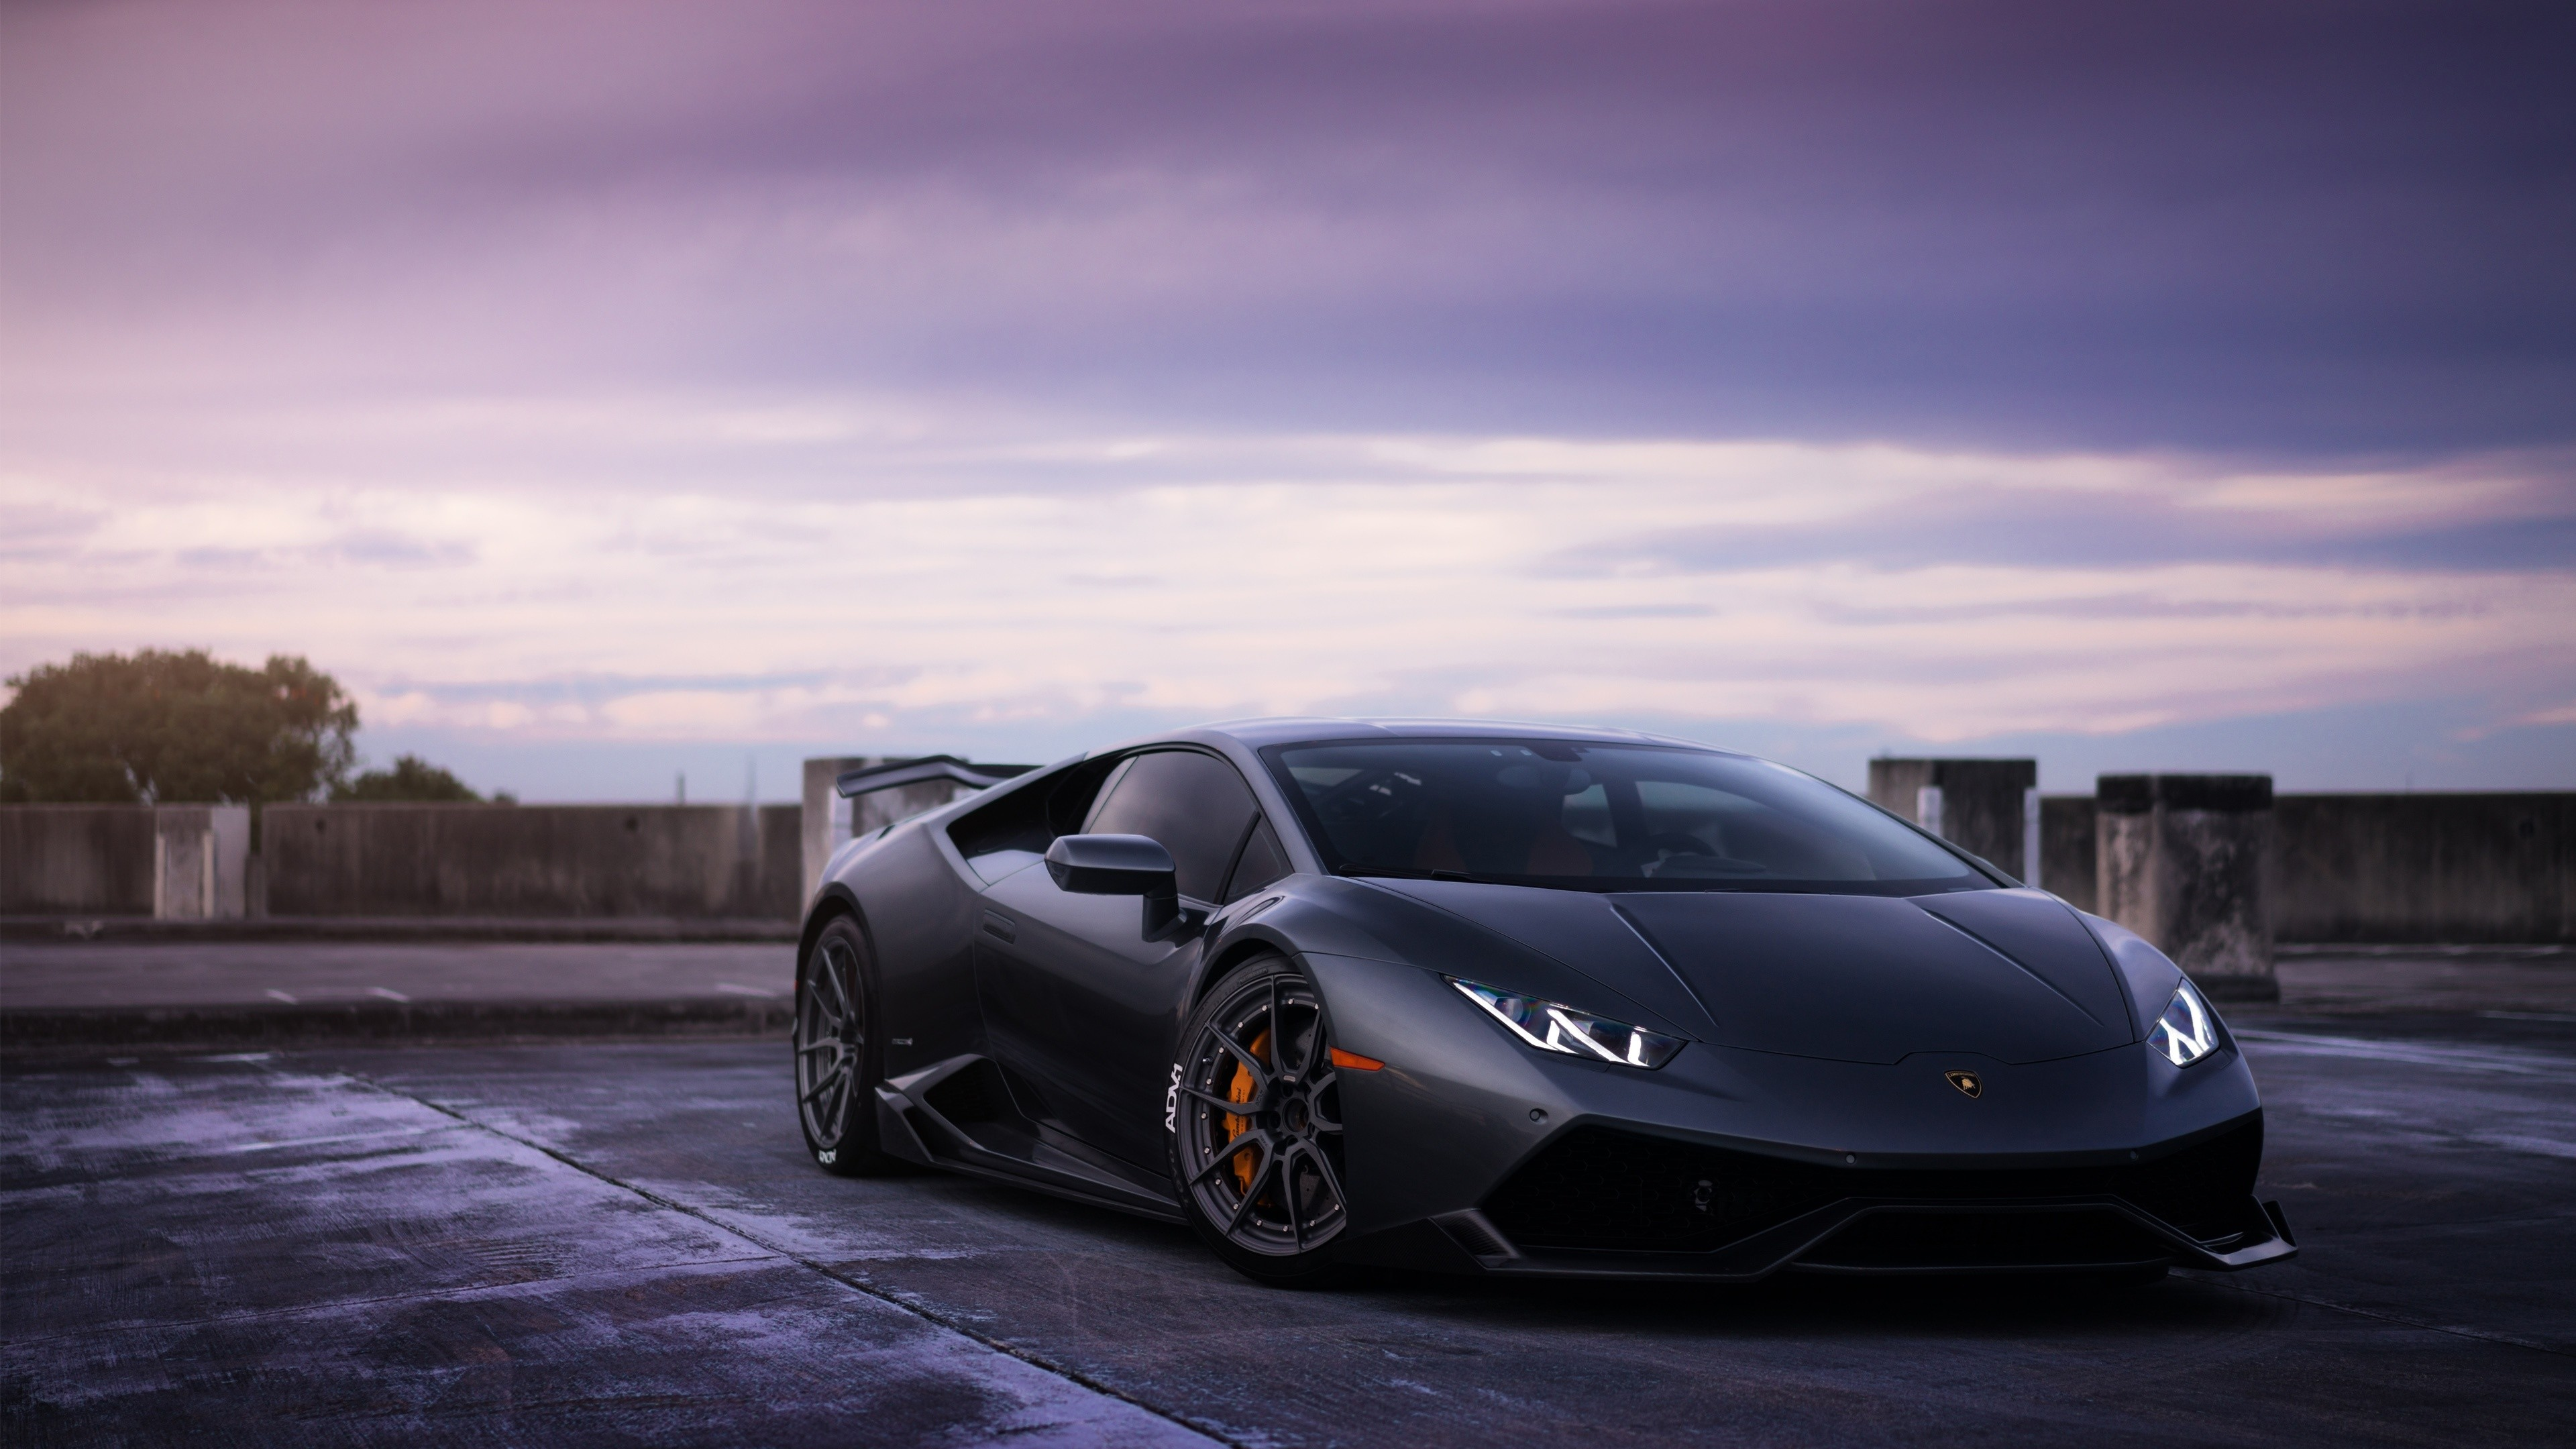 Download Wallpaper Mac Lamborghini - 800836-full-size-lamborghini-huracan-wallpapers-3840x2160-tablet  Image_477454.jpg